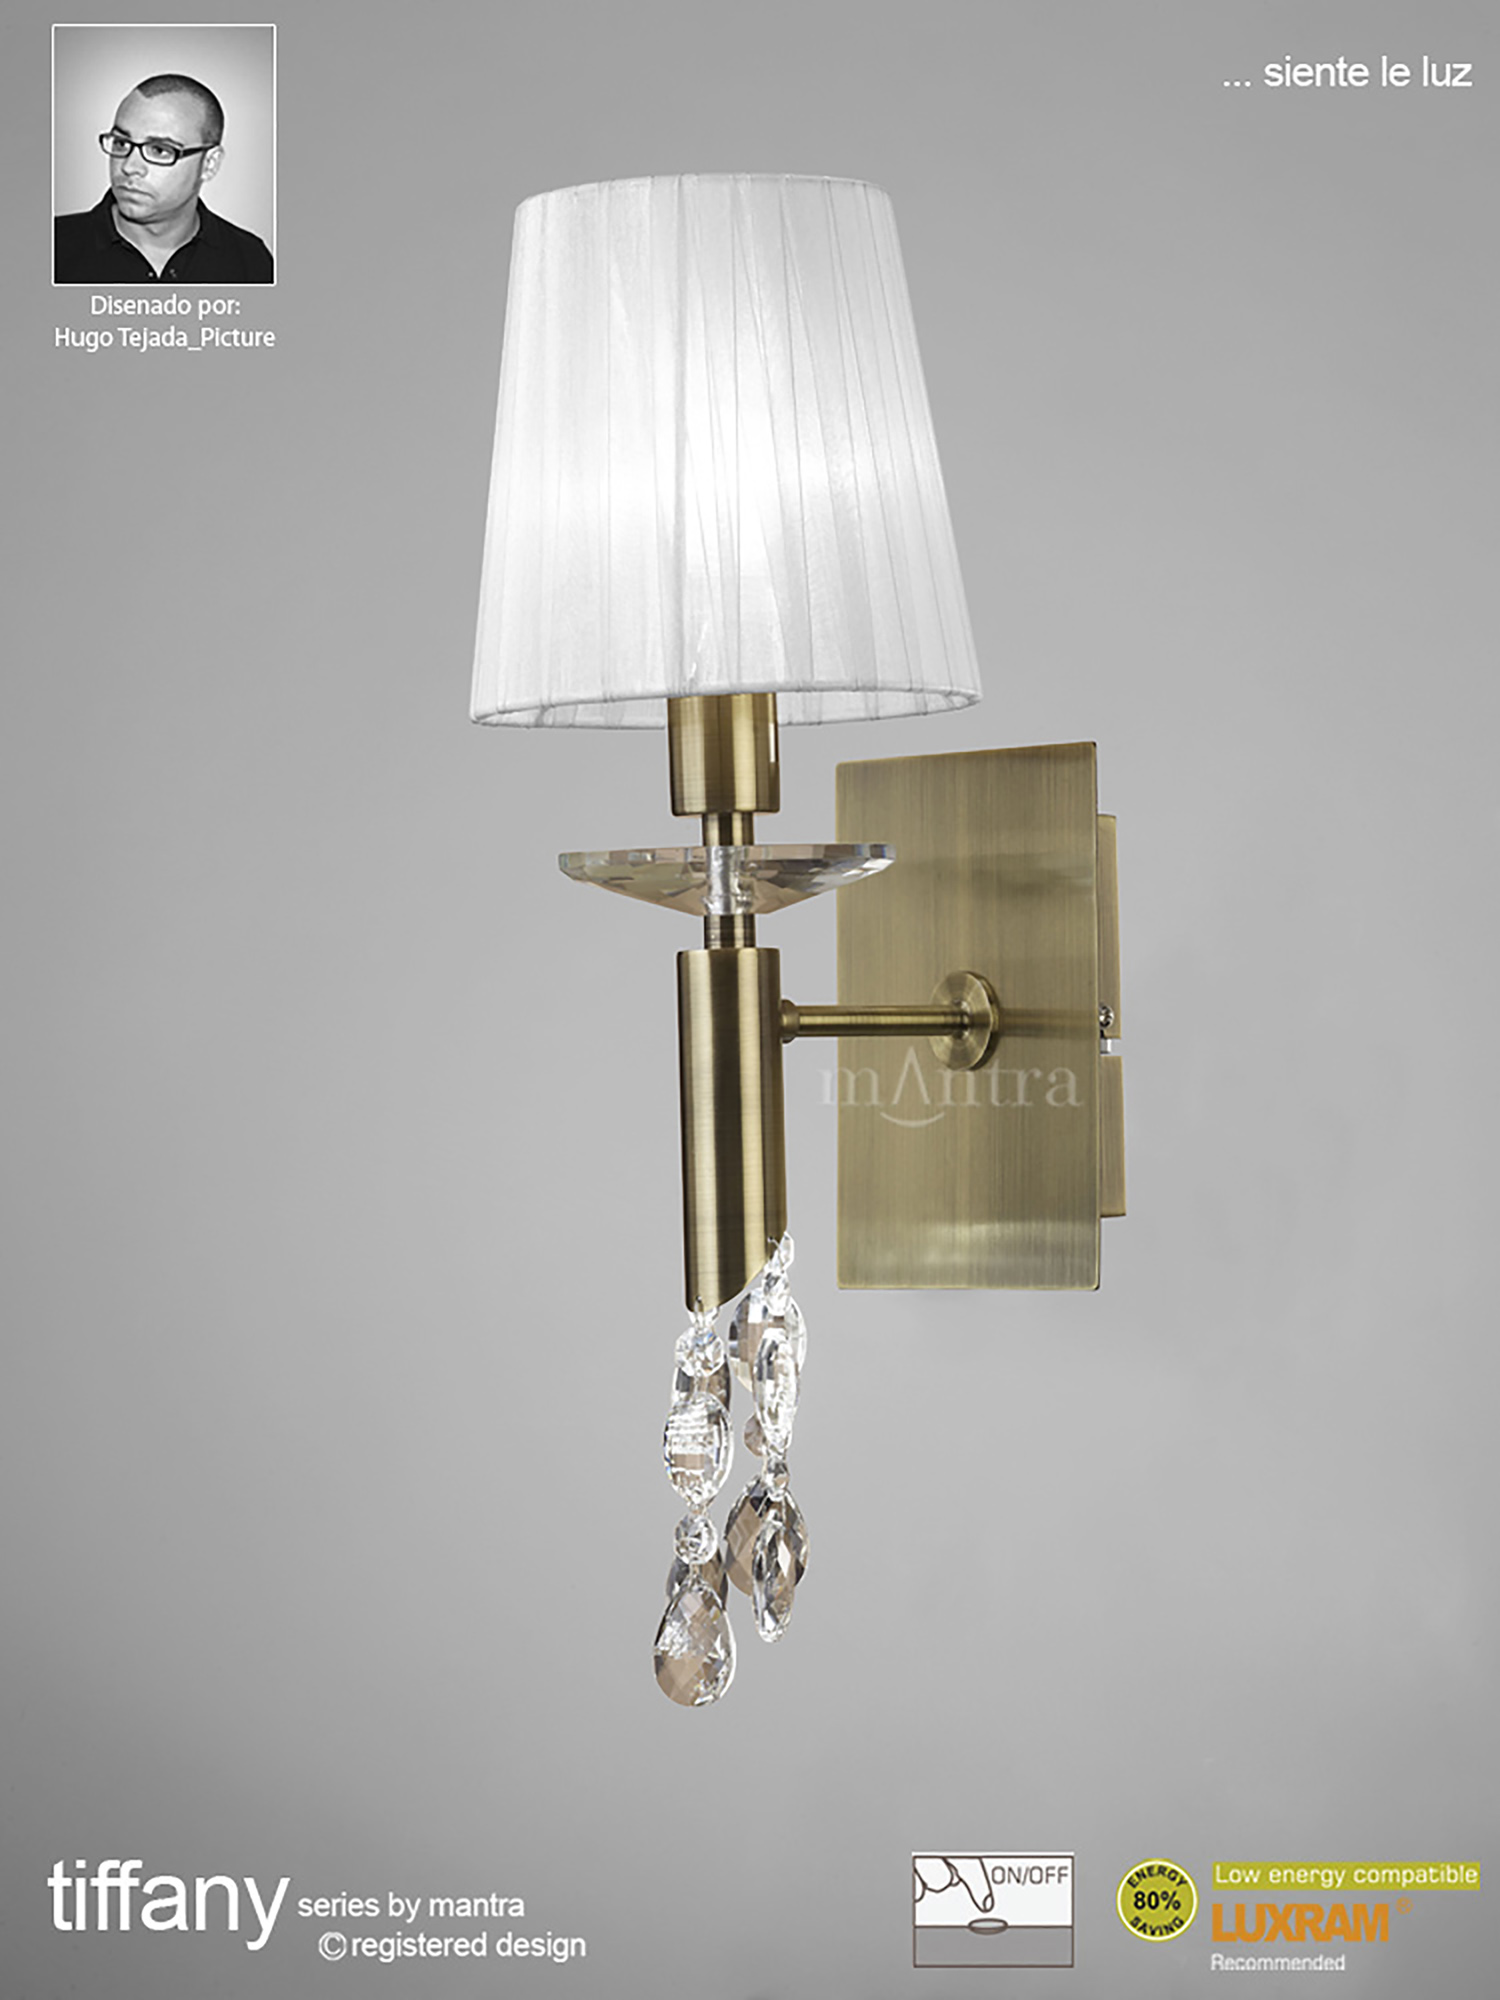 Tiffany AB Crystal Table Lamps Mantra Contemporary Crystal Table Lamps